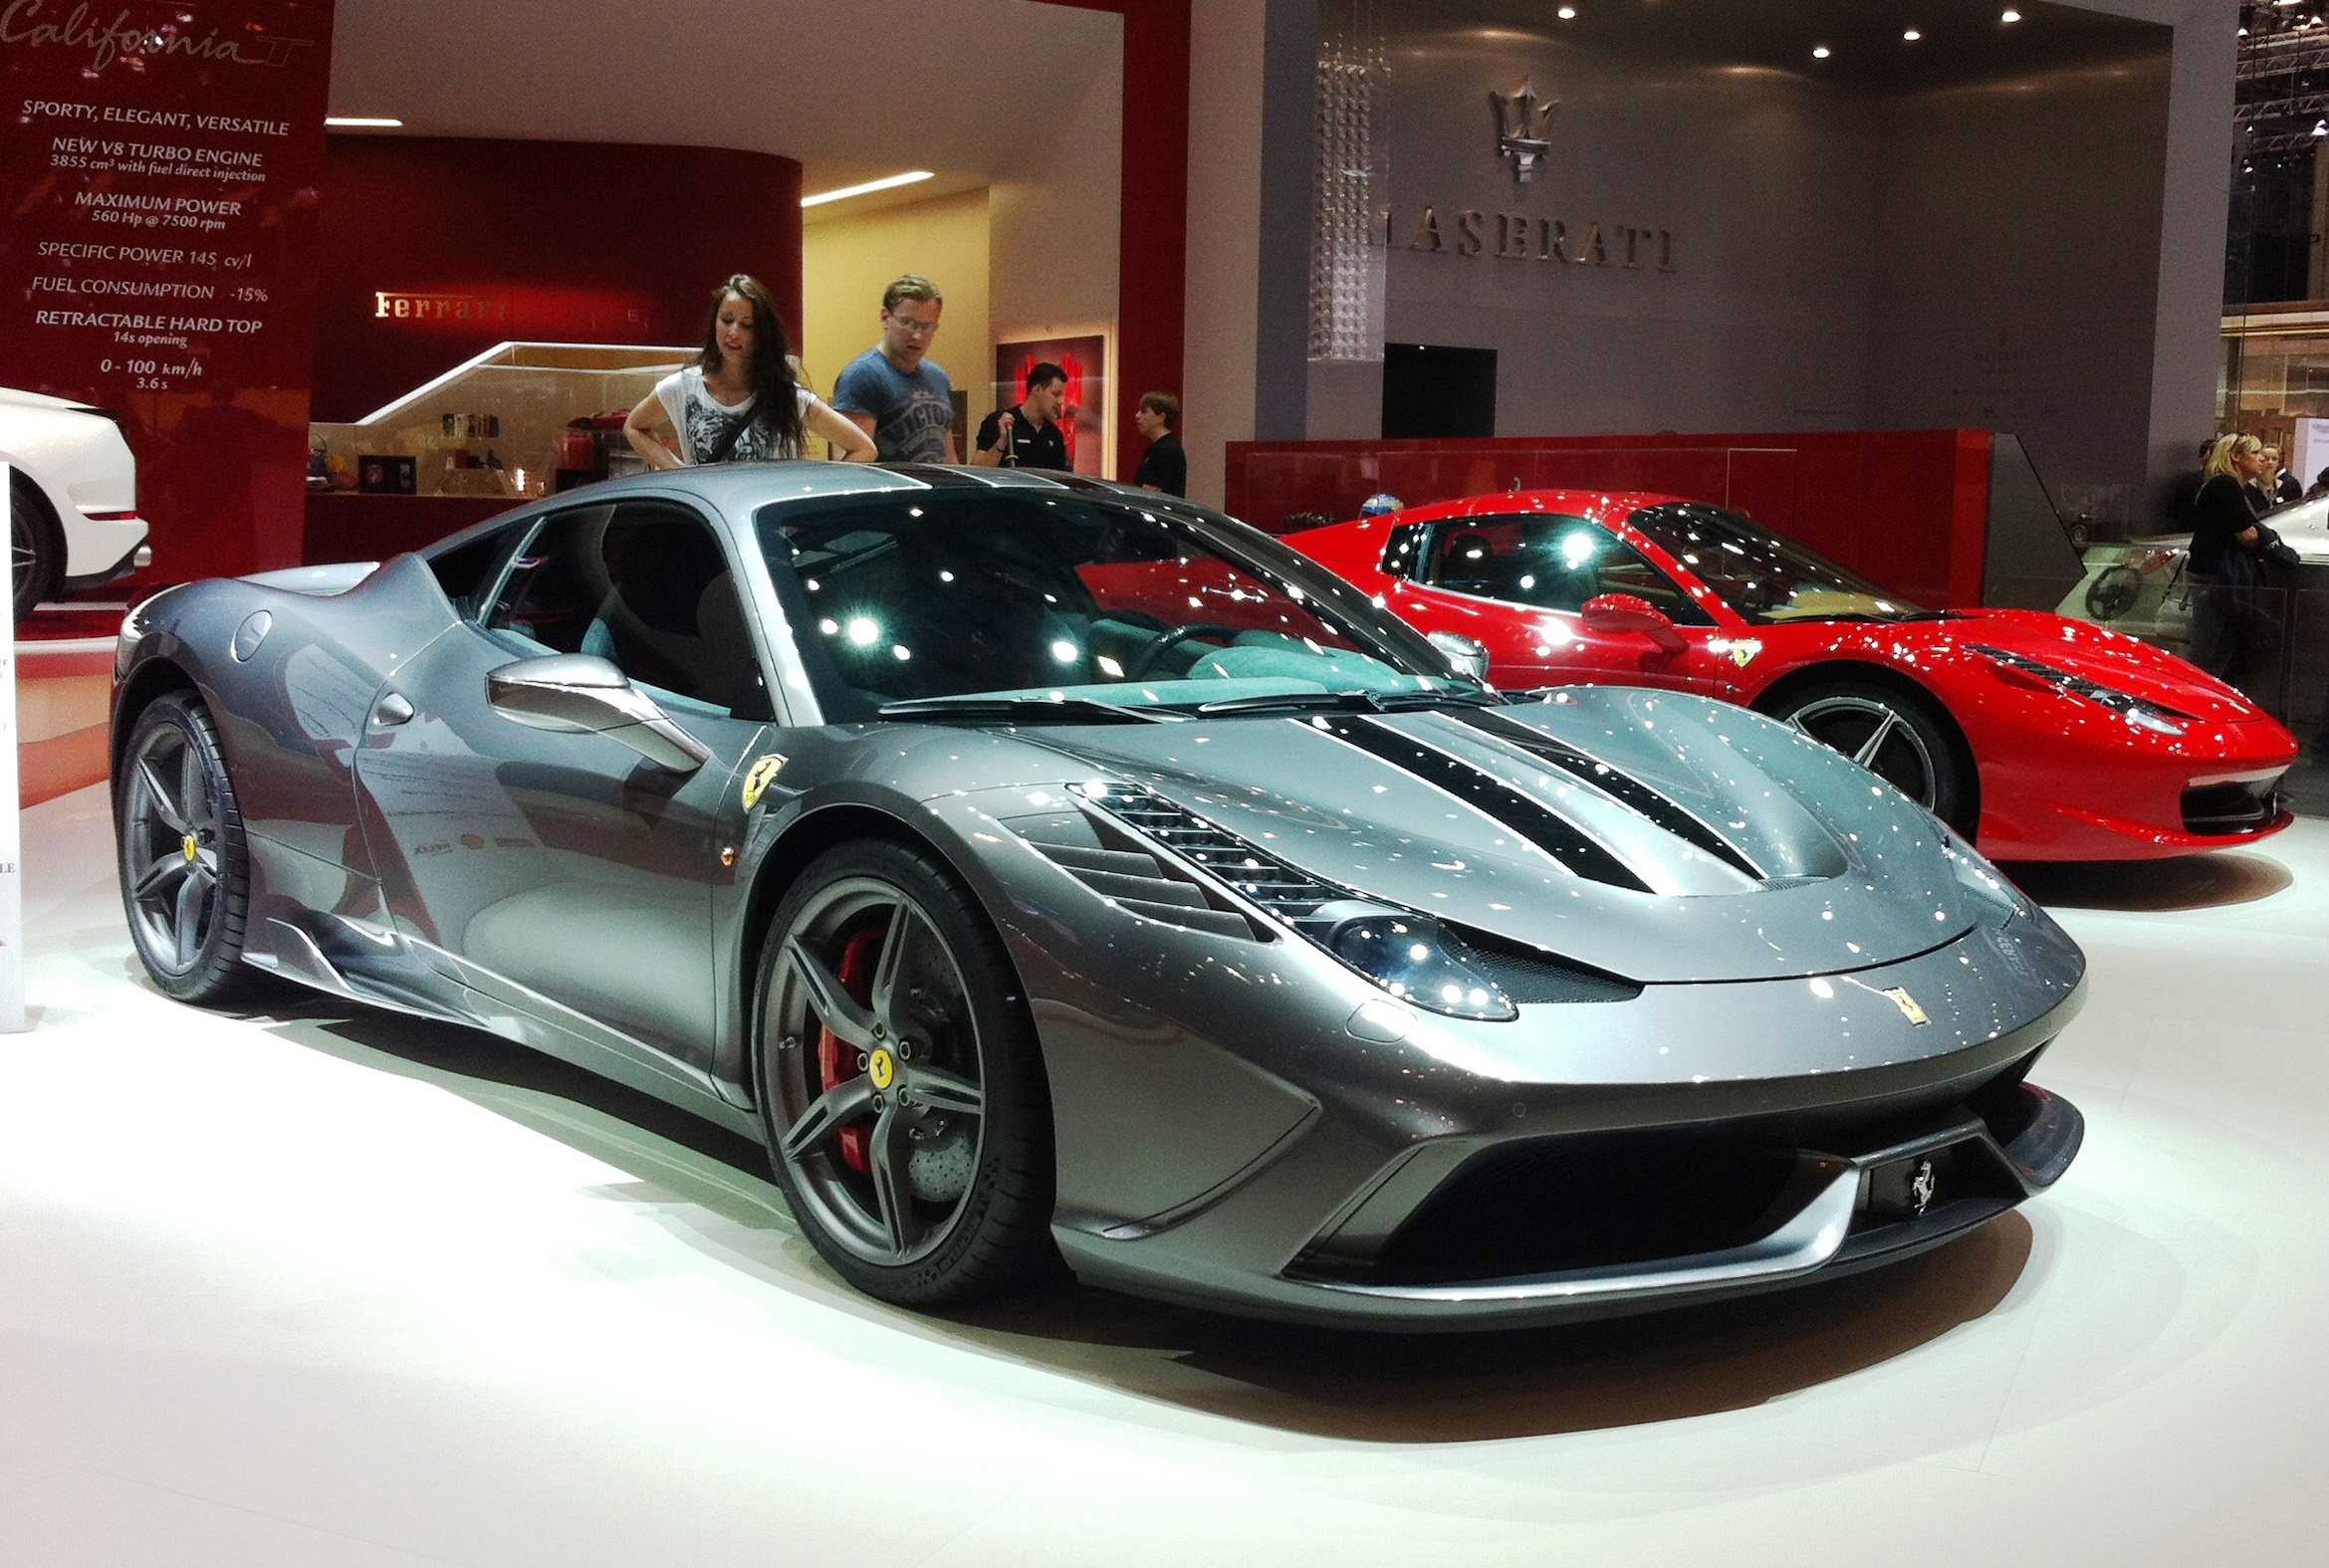 file ferrari 458 speciale jpg wikipedia. Black Bedroom Furniture Sets. Home Design Ideas